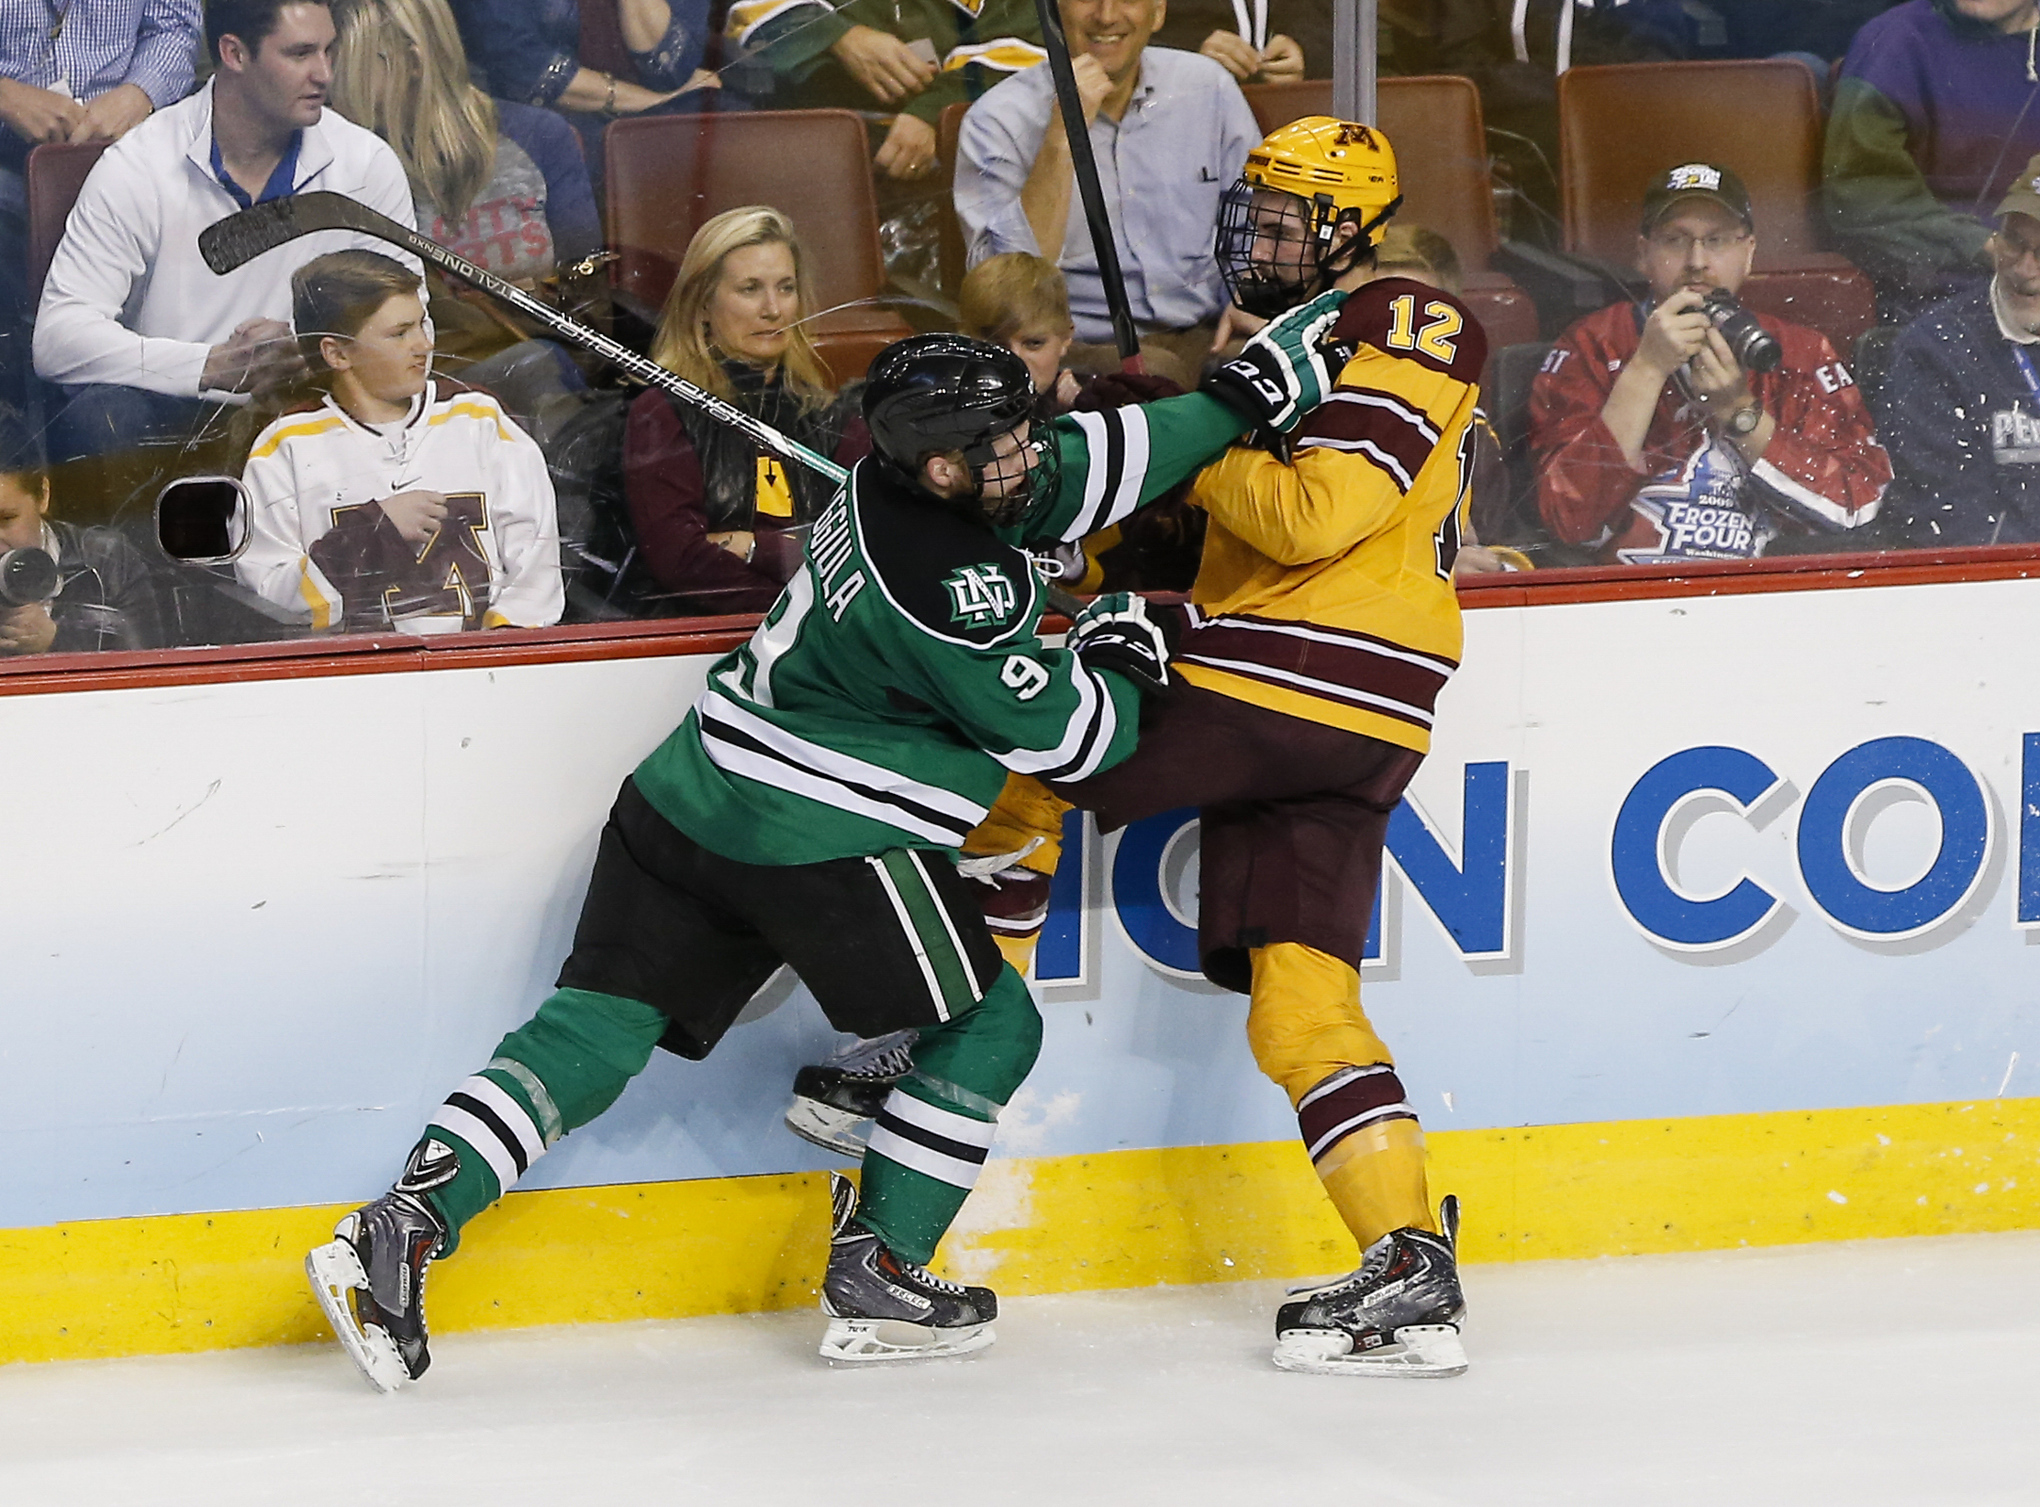 Tough play along the boards is a specialty of North Dakota